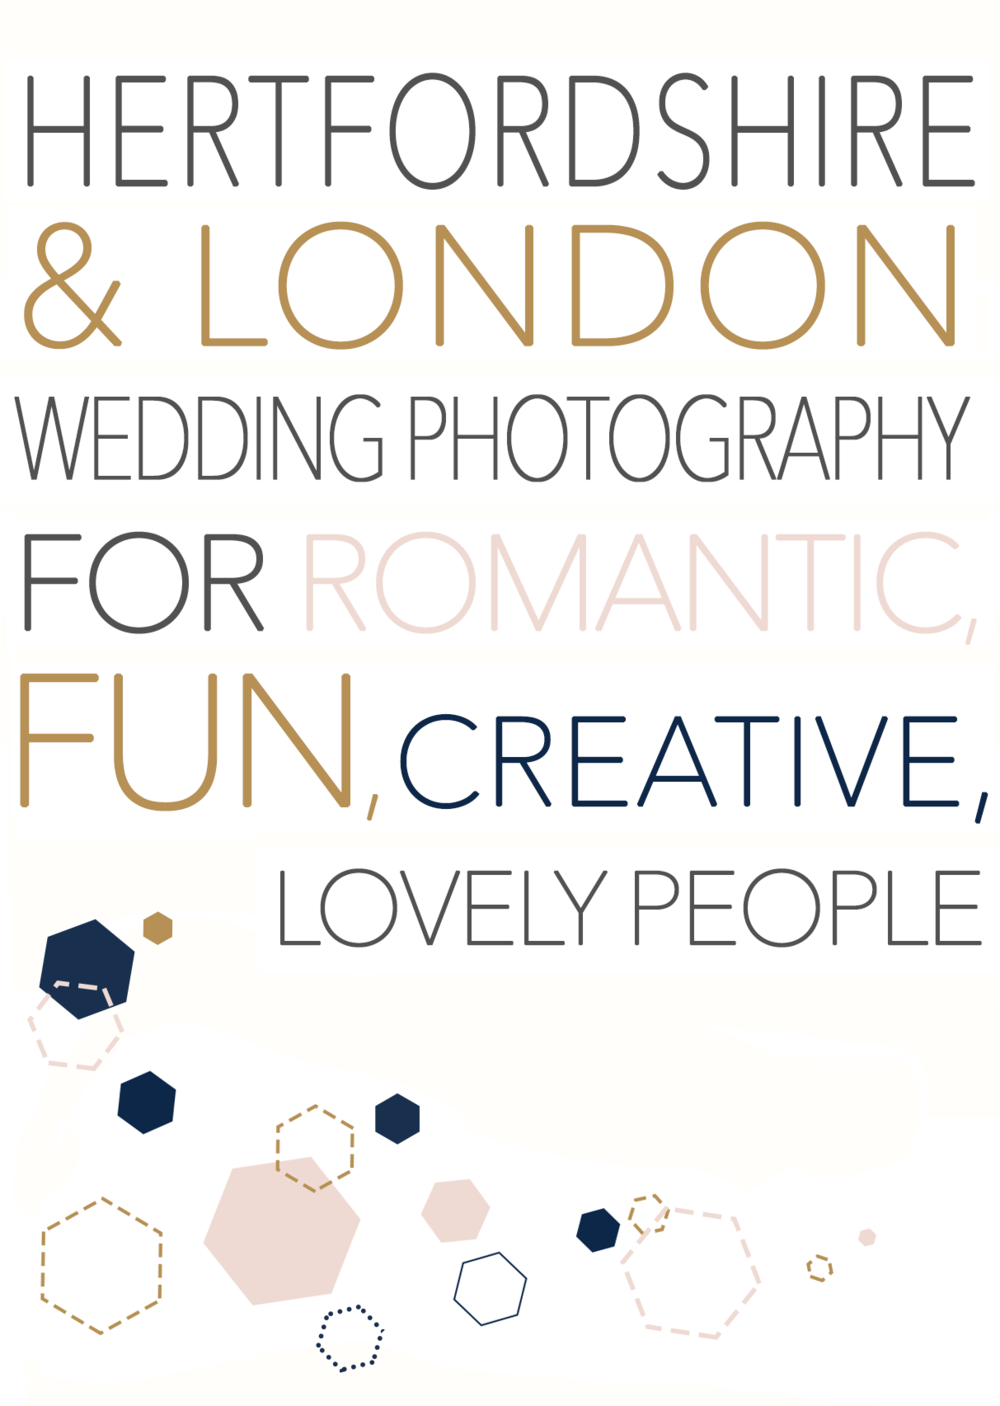 Hertfordshire & London wedding photography for romantic,fun,creative, lovely people.